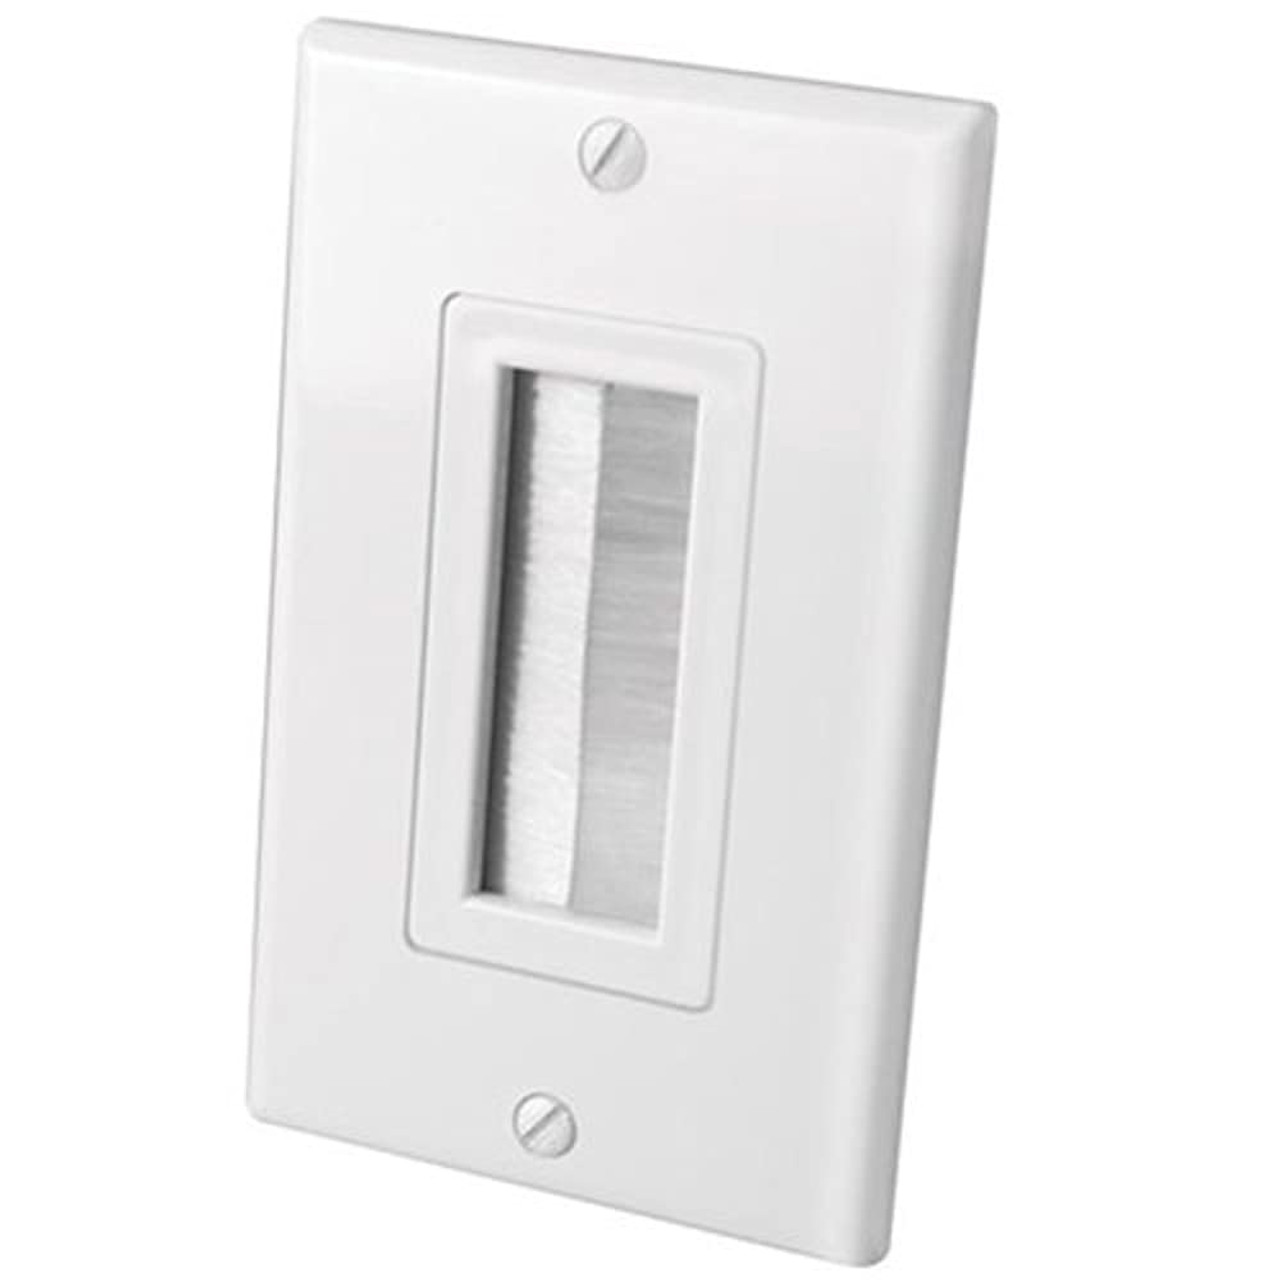 Vanco 120614 White 2-Piece Bulk Cable Wall Plate